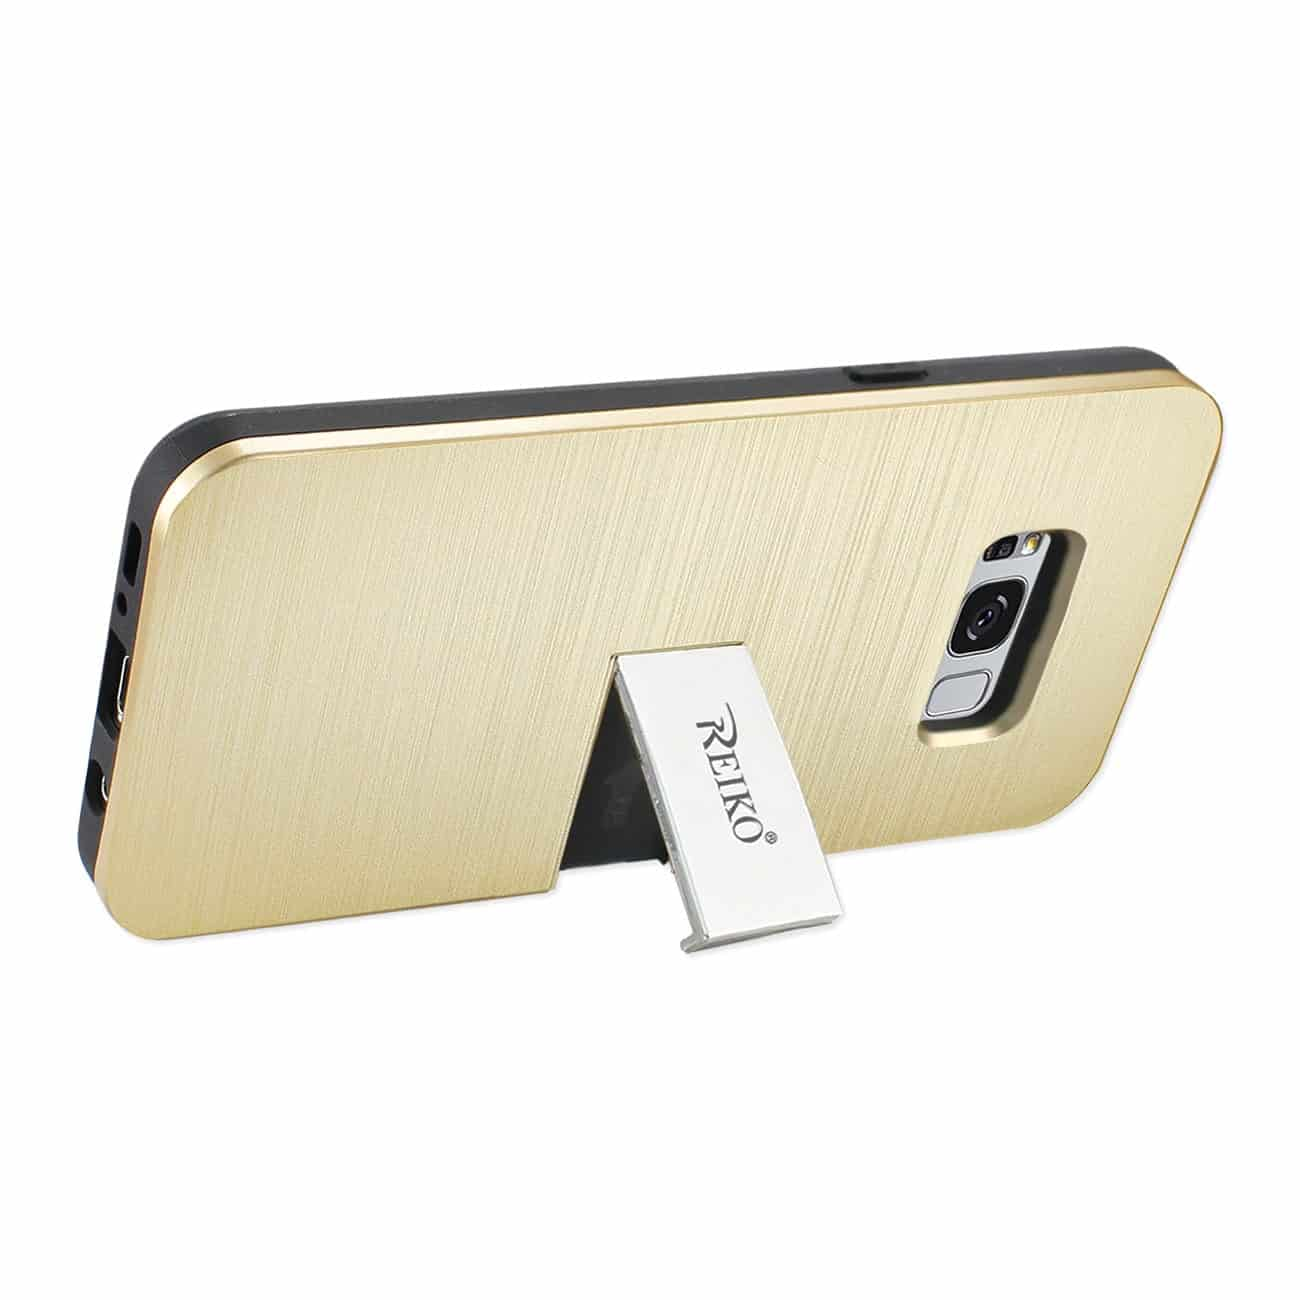 SAMSUNG S8 EDGE/ S8 PLUS SLIM ARMOR HYBRID CASE WITH CARD HOLDER AND KICKSTAND IN GOLD